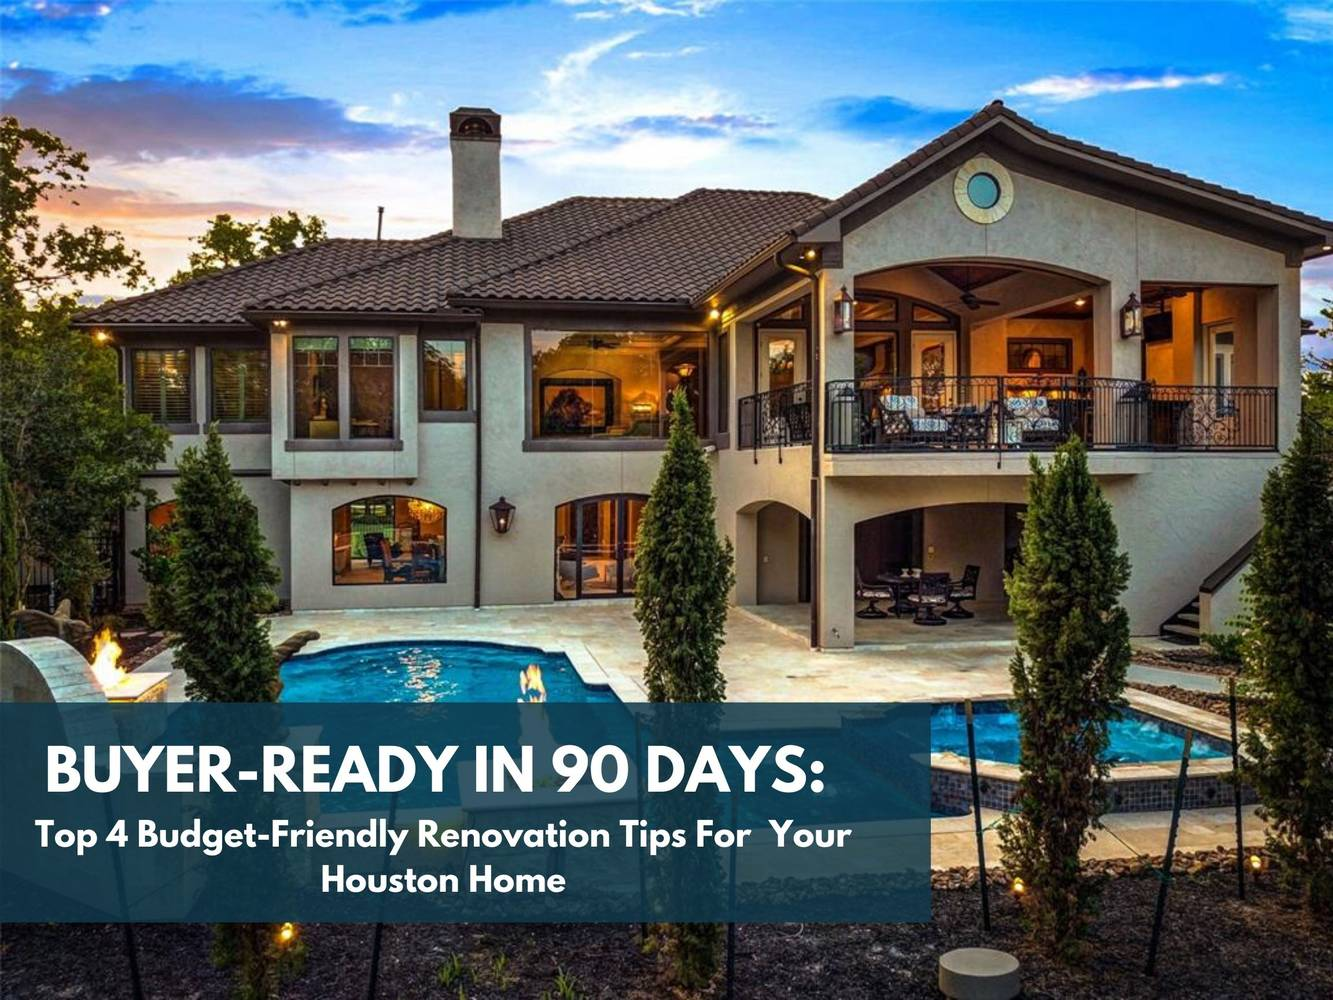 Quick and Easy Renovation Tips: How To Add Value To Your Houston Home